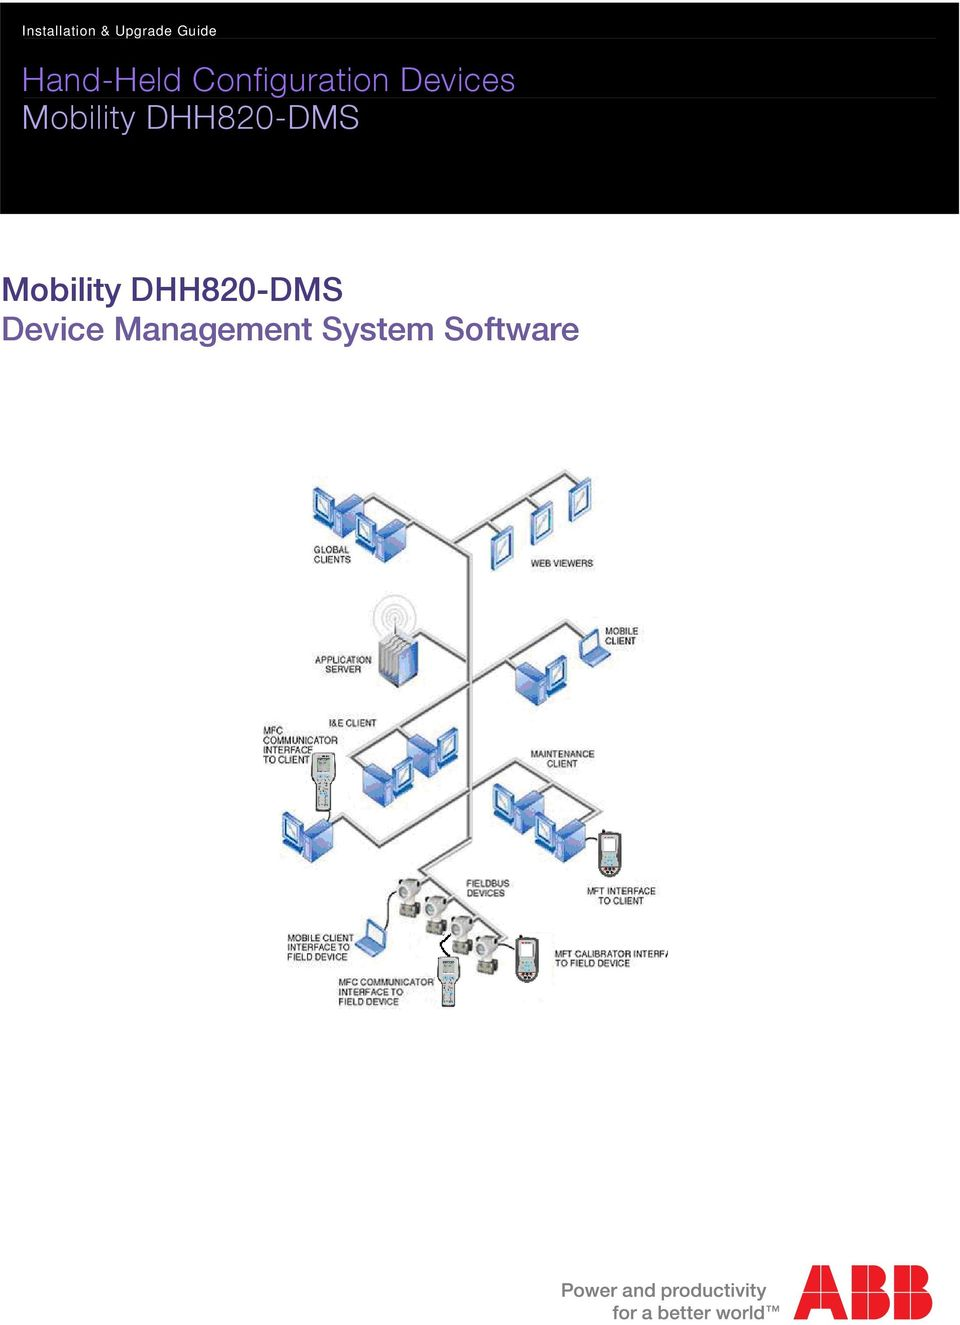 Mobility DHH820-DMS Mobility